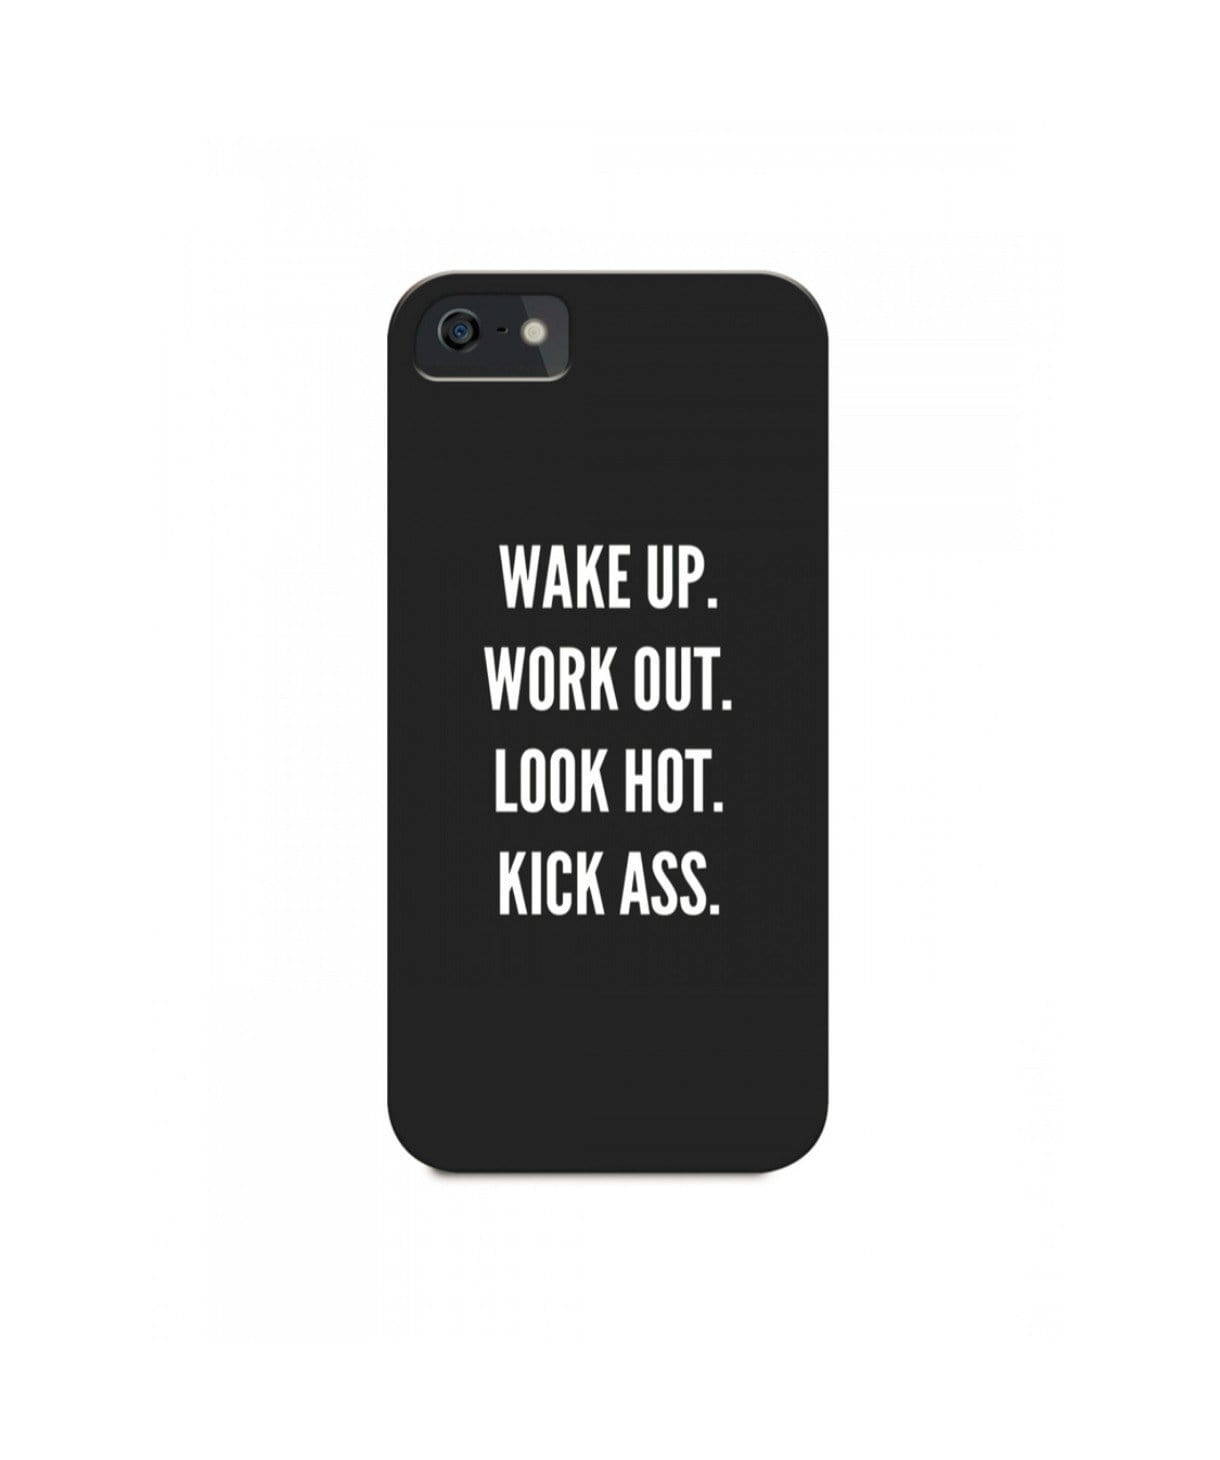 Kick Ass IPhone Cover (Personalisation Available) - Uptownie